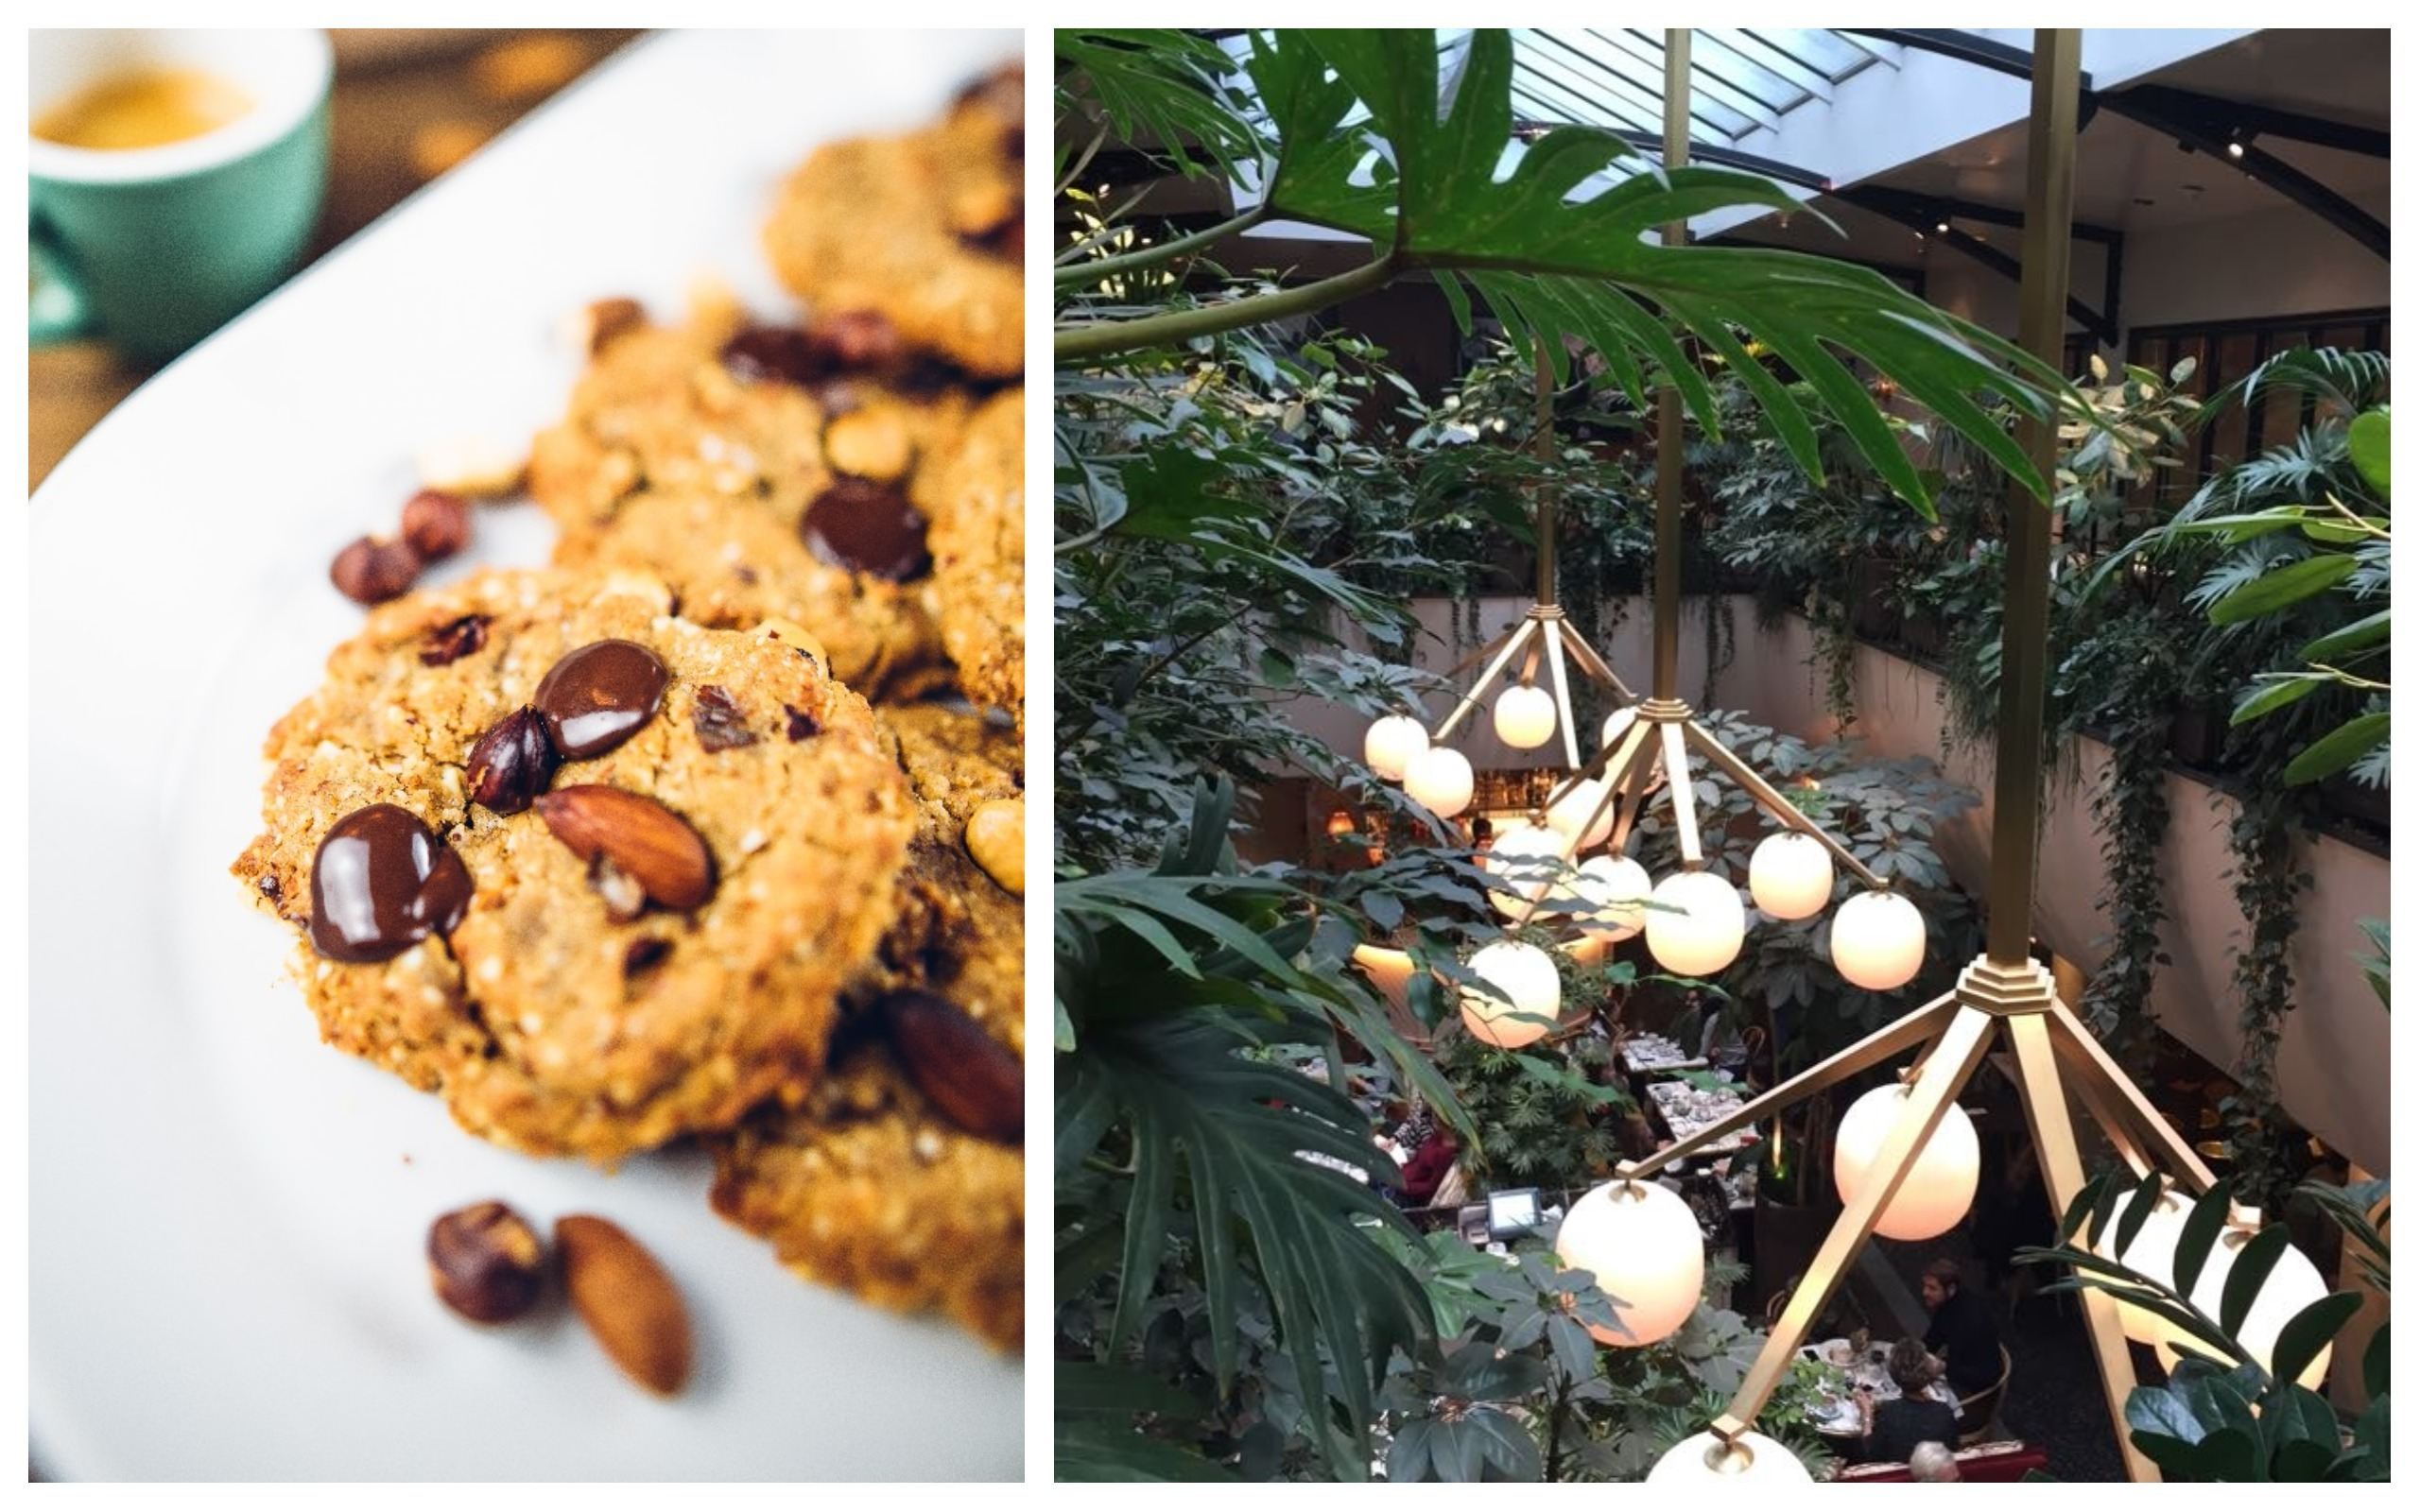 Homemade gluten-free cookies (left). Inside l'Acazar restaurant in Paris with lots of plants growing from the top gallery (right).